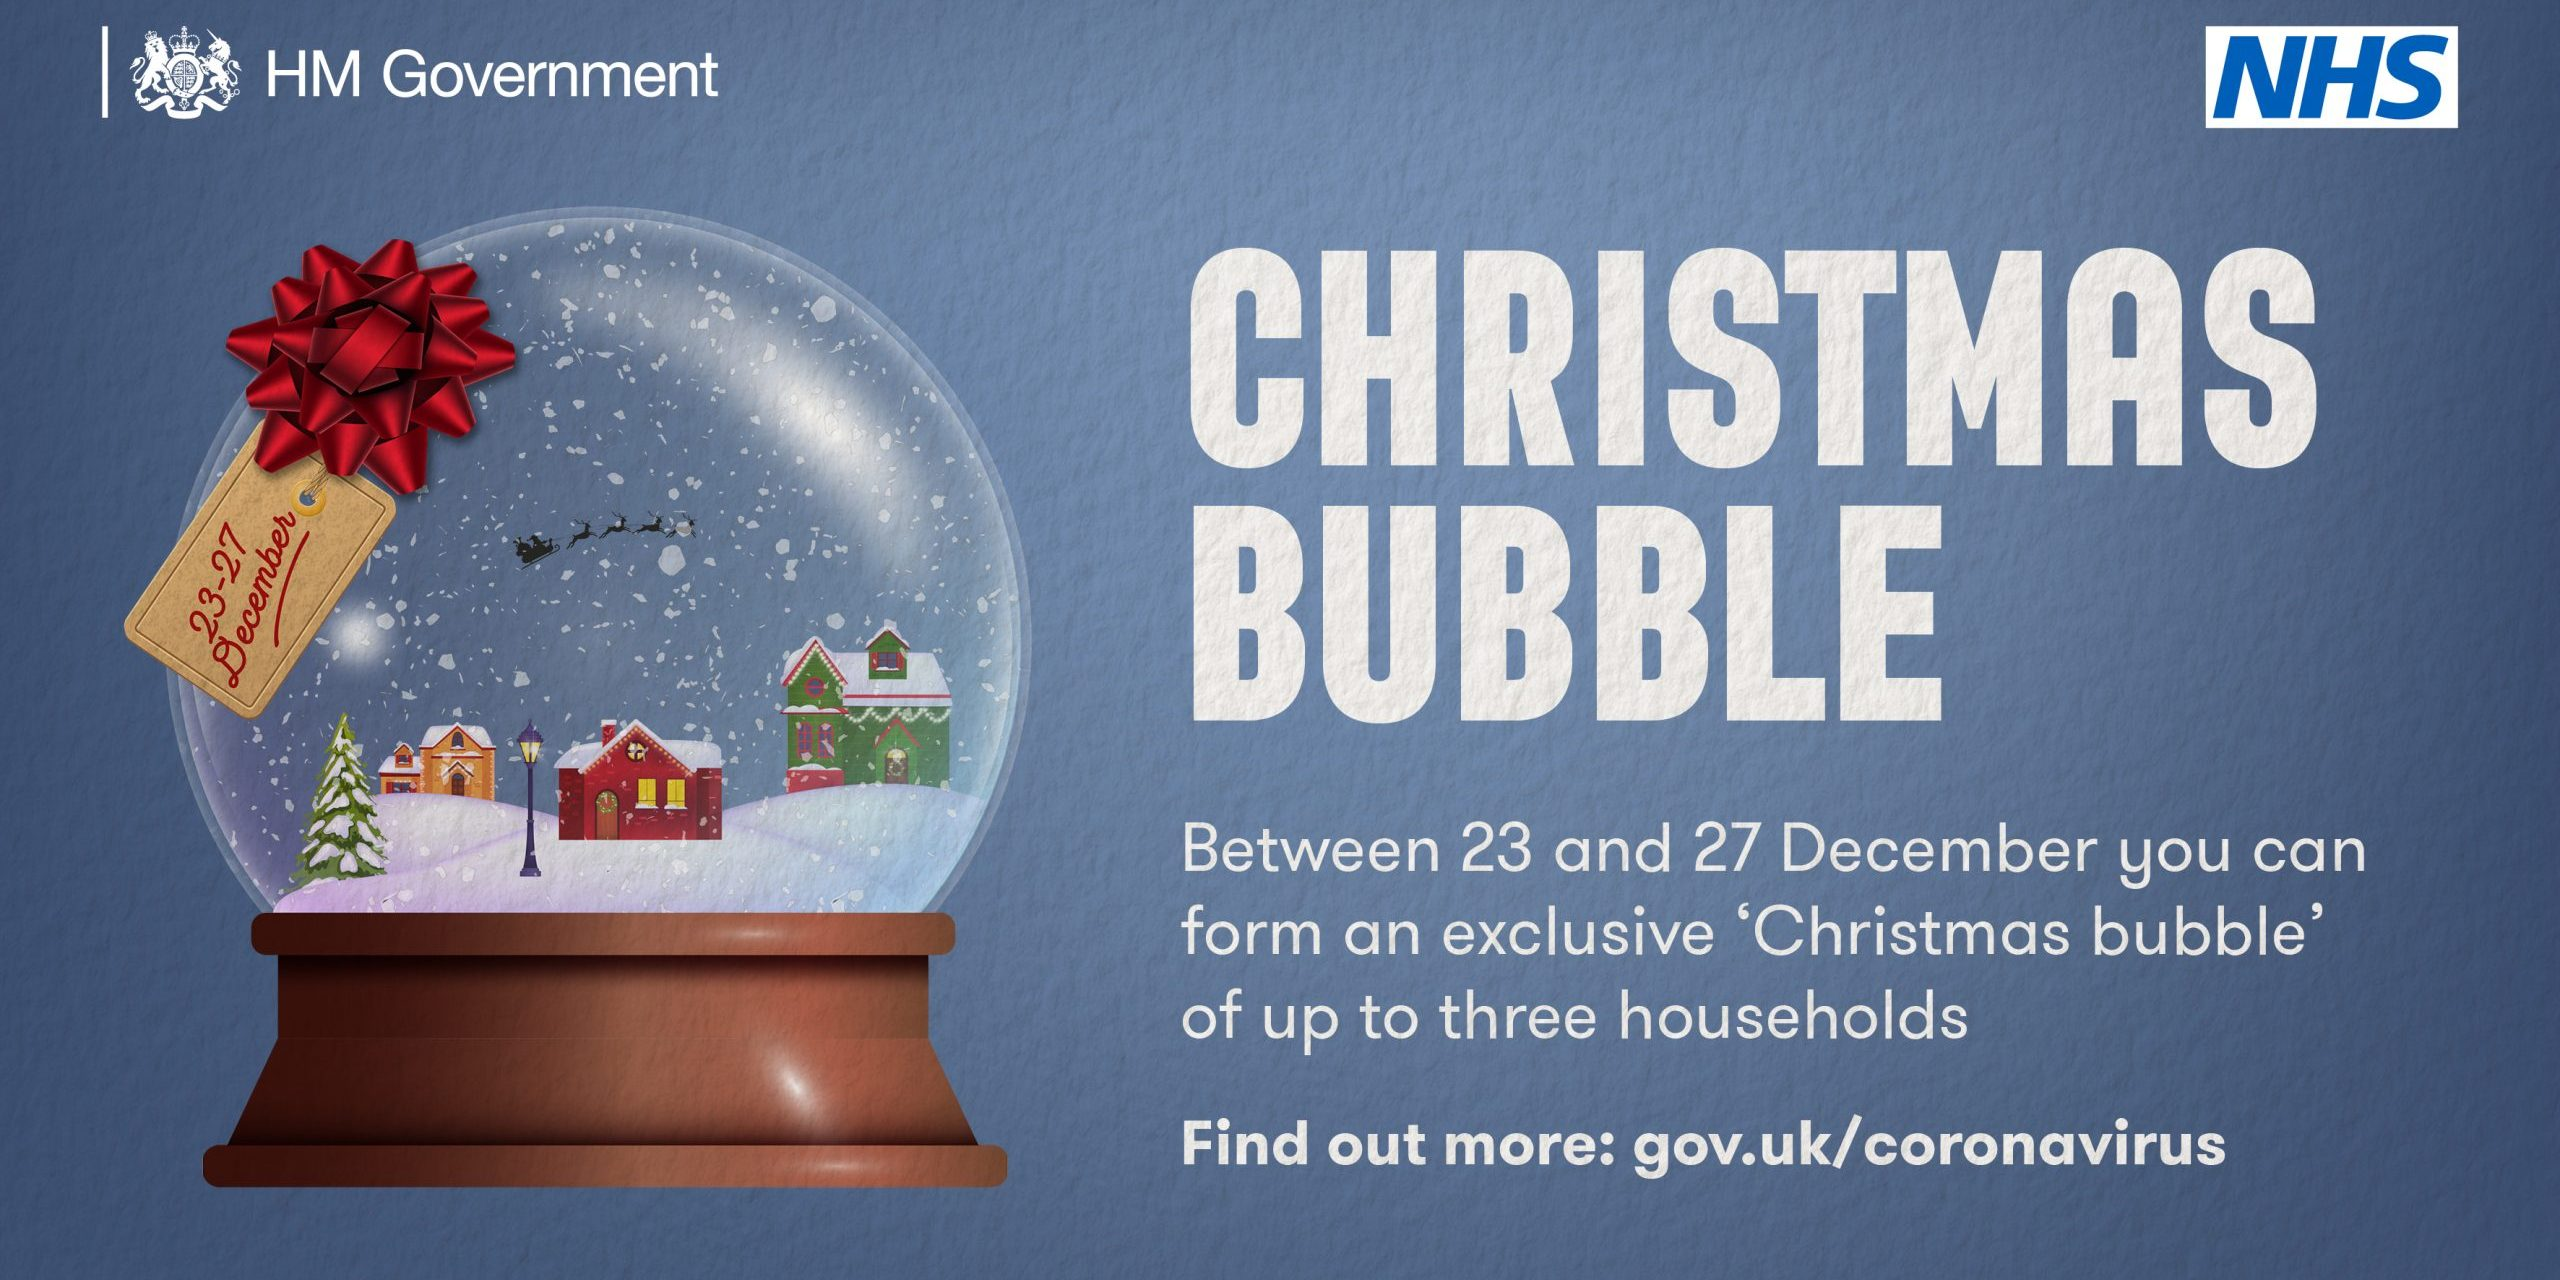 Five days of Christmas with your loved ones | Merton Council News Room